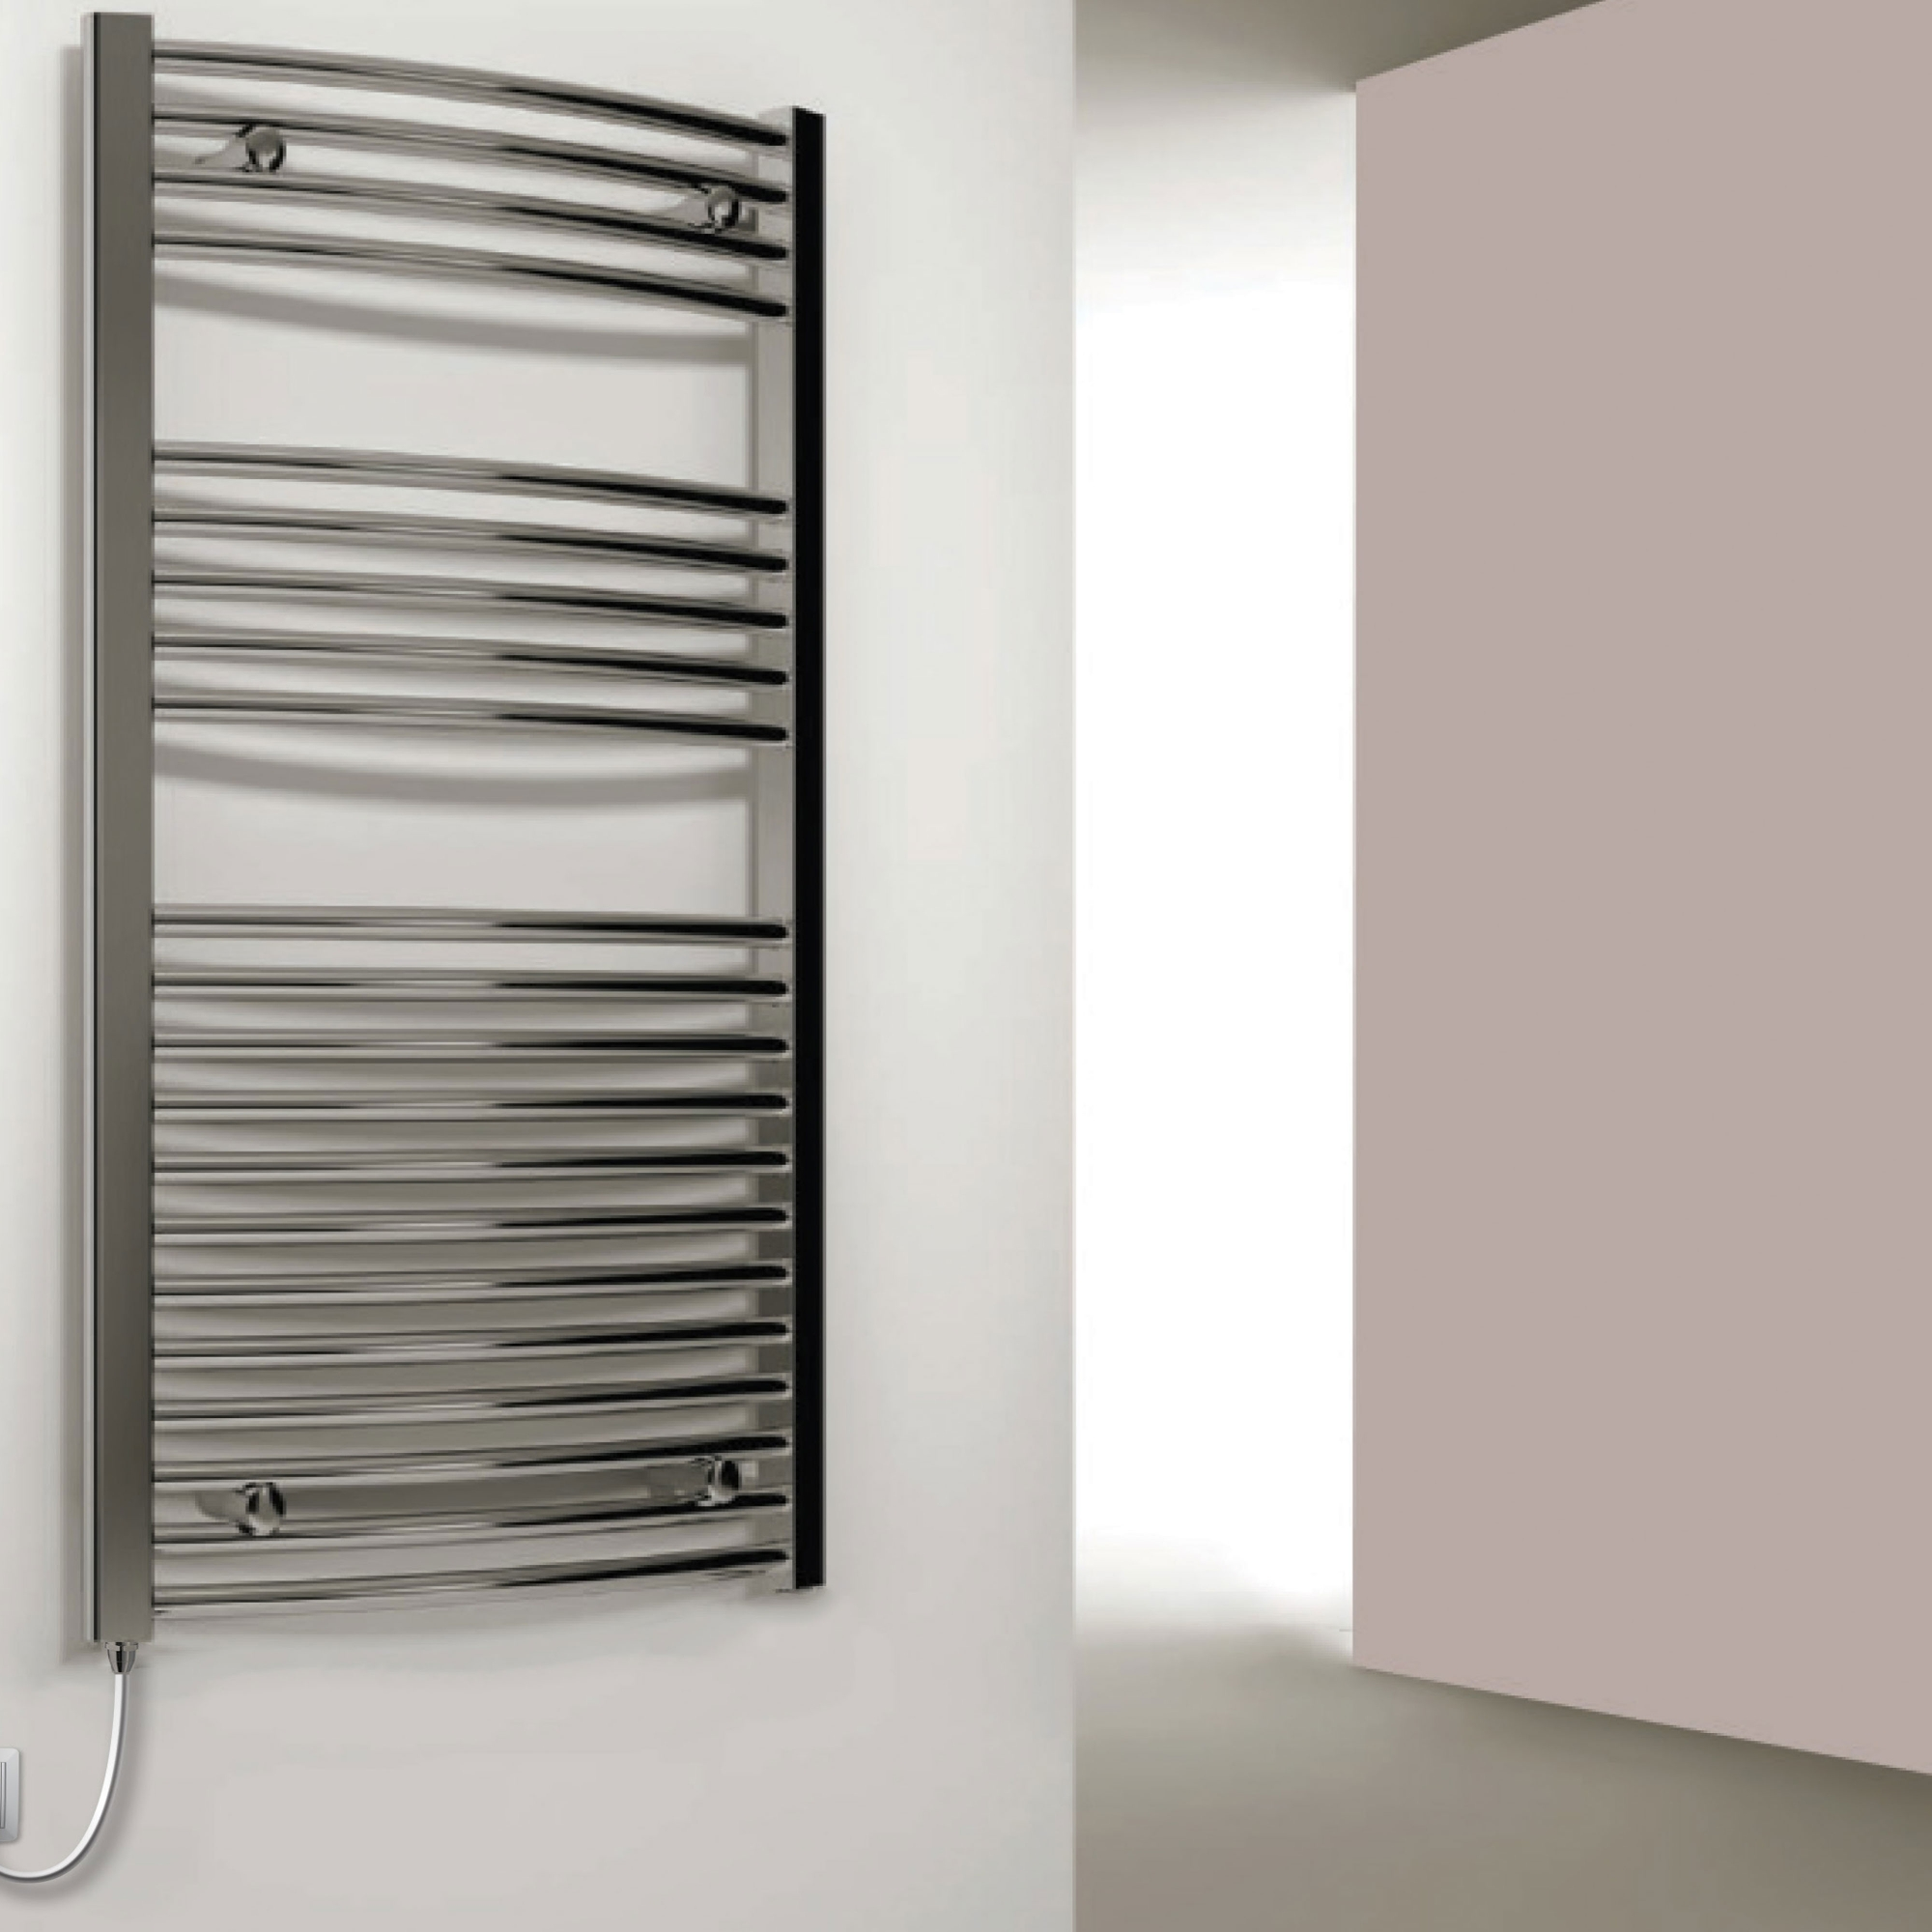 Reina Capo Curved Thermostatic Electric Heated Towel Rail 1200mm H x 400mm W Chrome-0